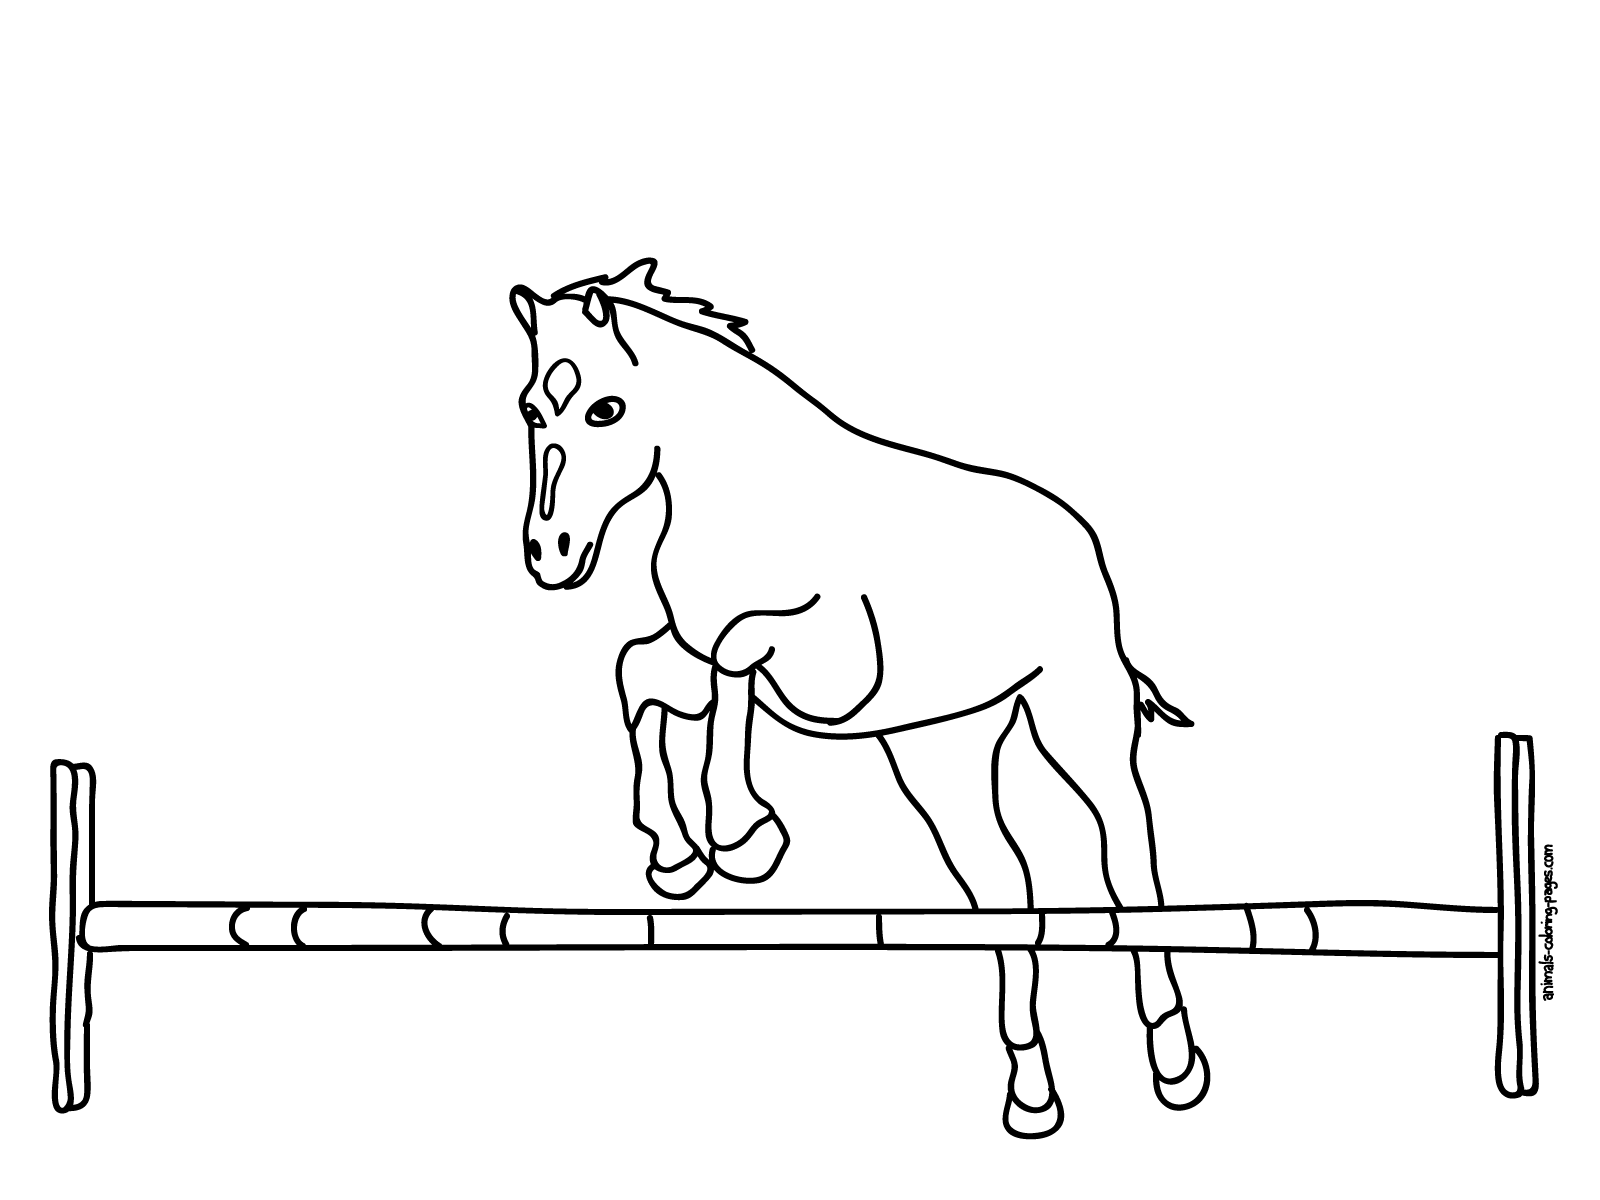 Horse jumping coloring pages to print - crazywidow.info